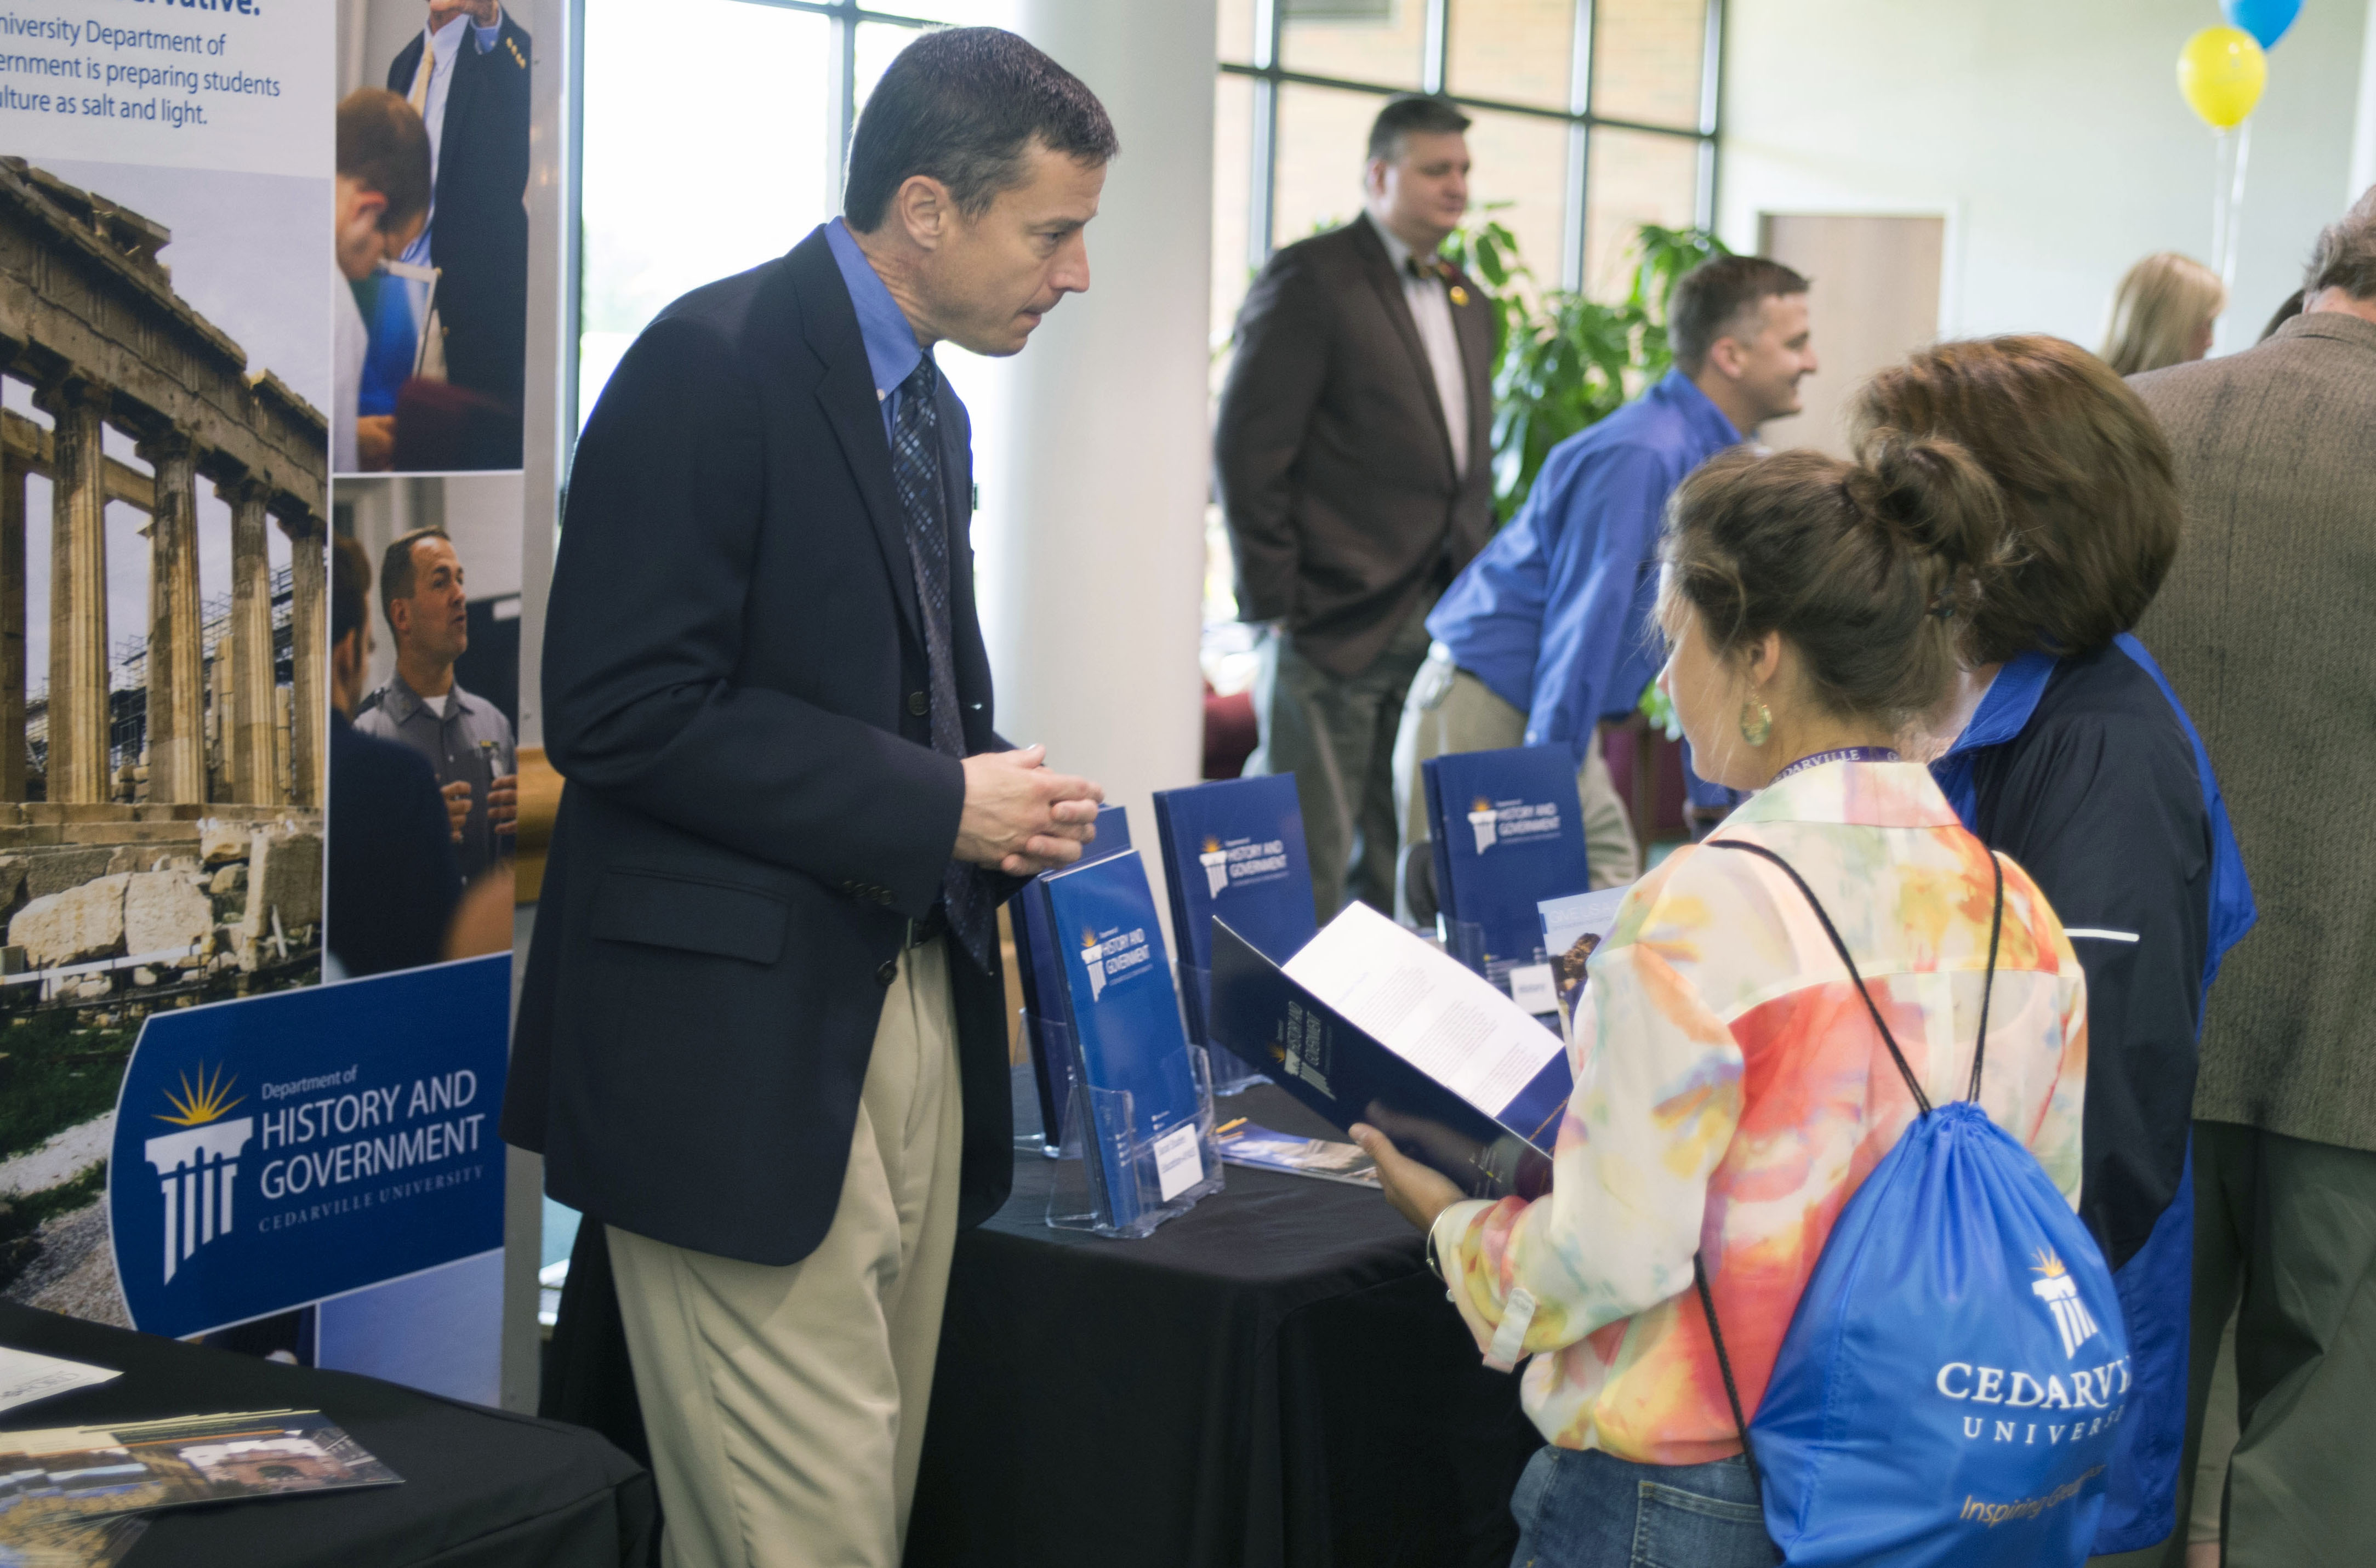 History and government chair Tom Mach discusses academic programs with a prospective student attending a CU Friday. Photo credit: Scott L. Huck/Cedarville University